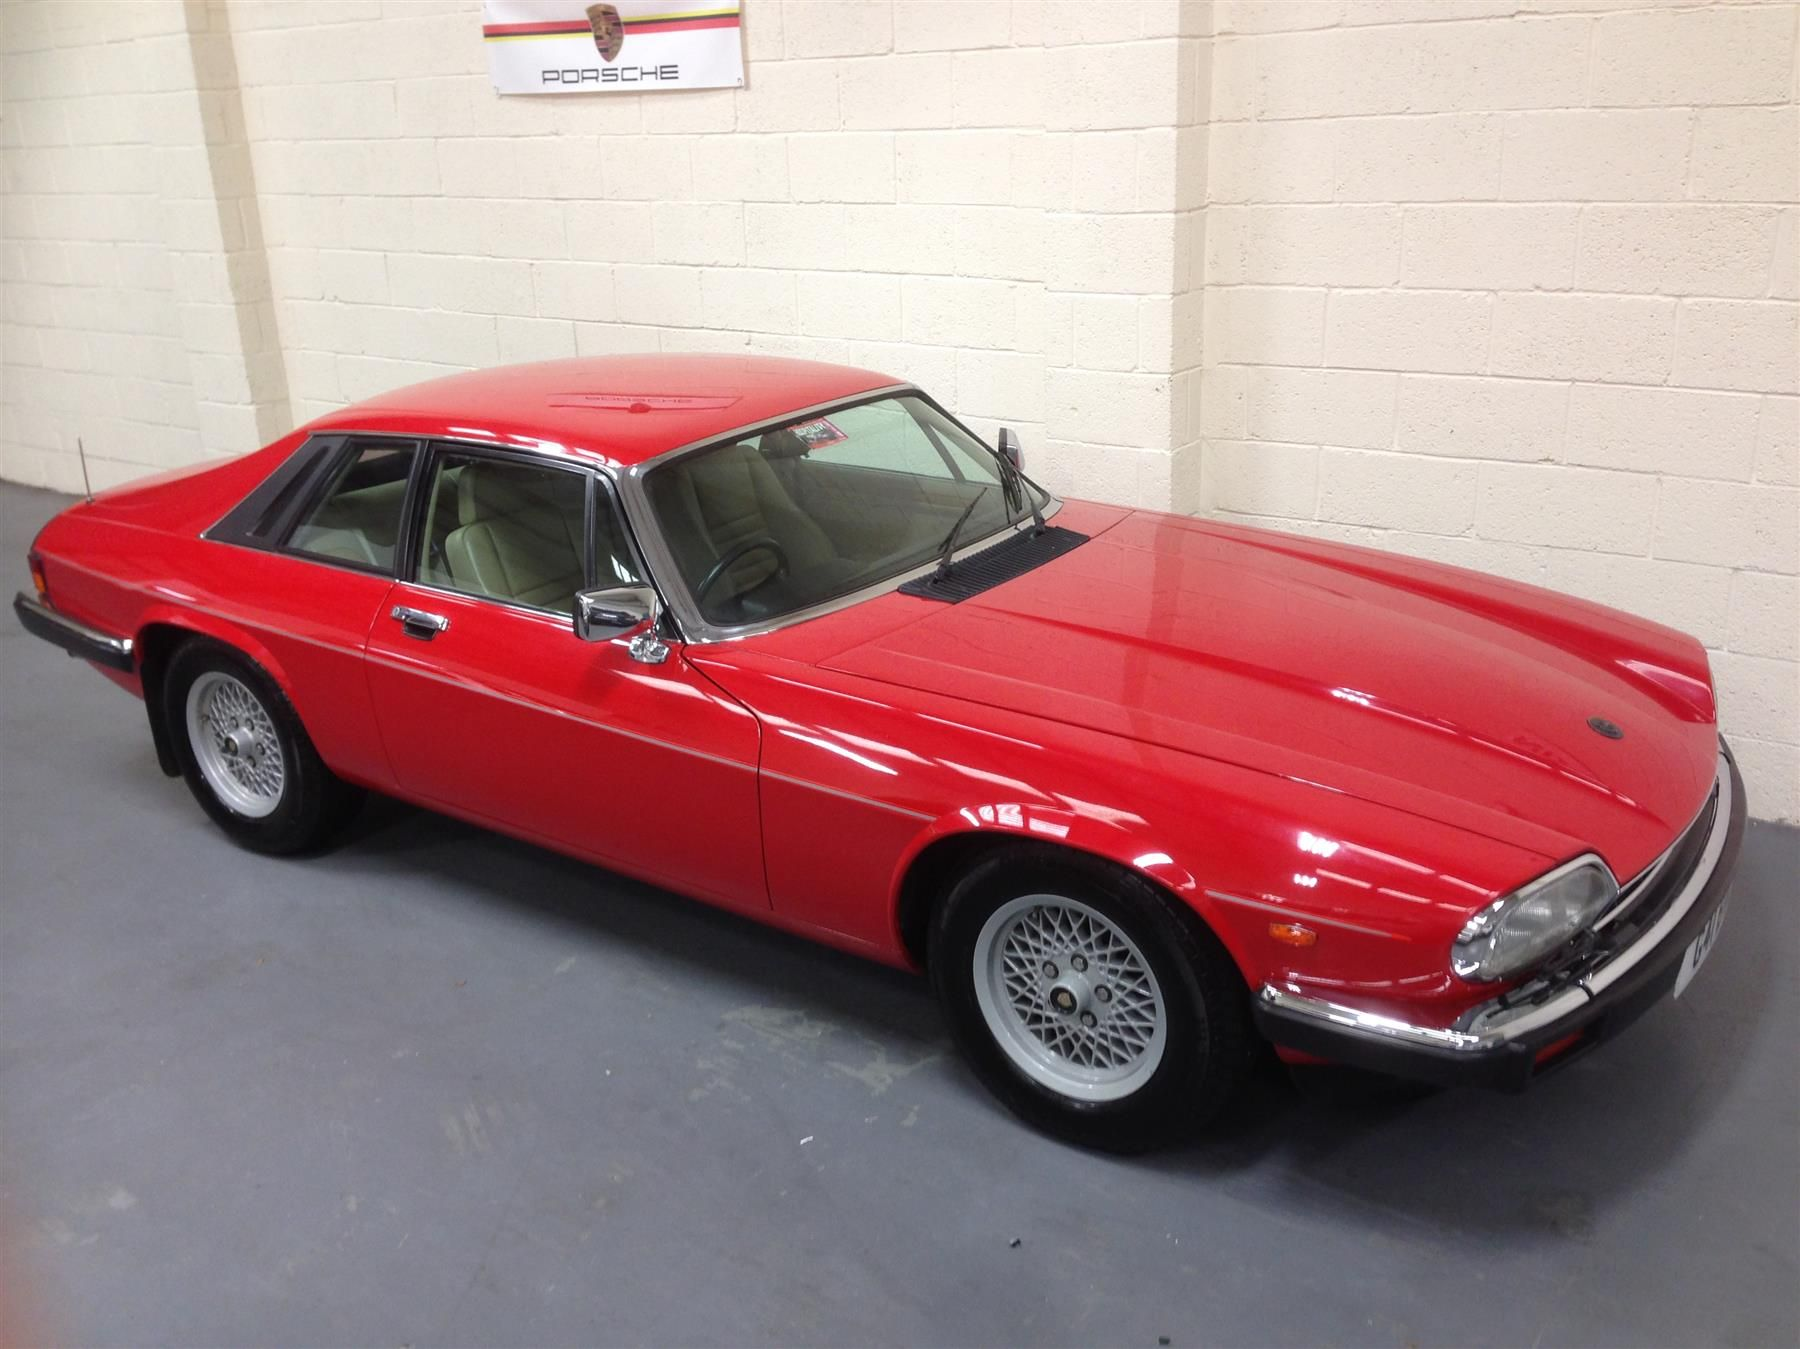 Used 1990 Jaguar Xjs For In Warwickshire From Jrmd Sports And Clics